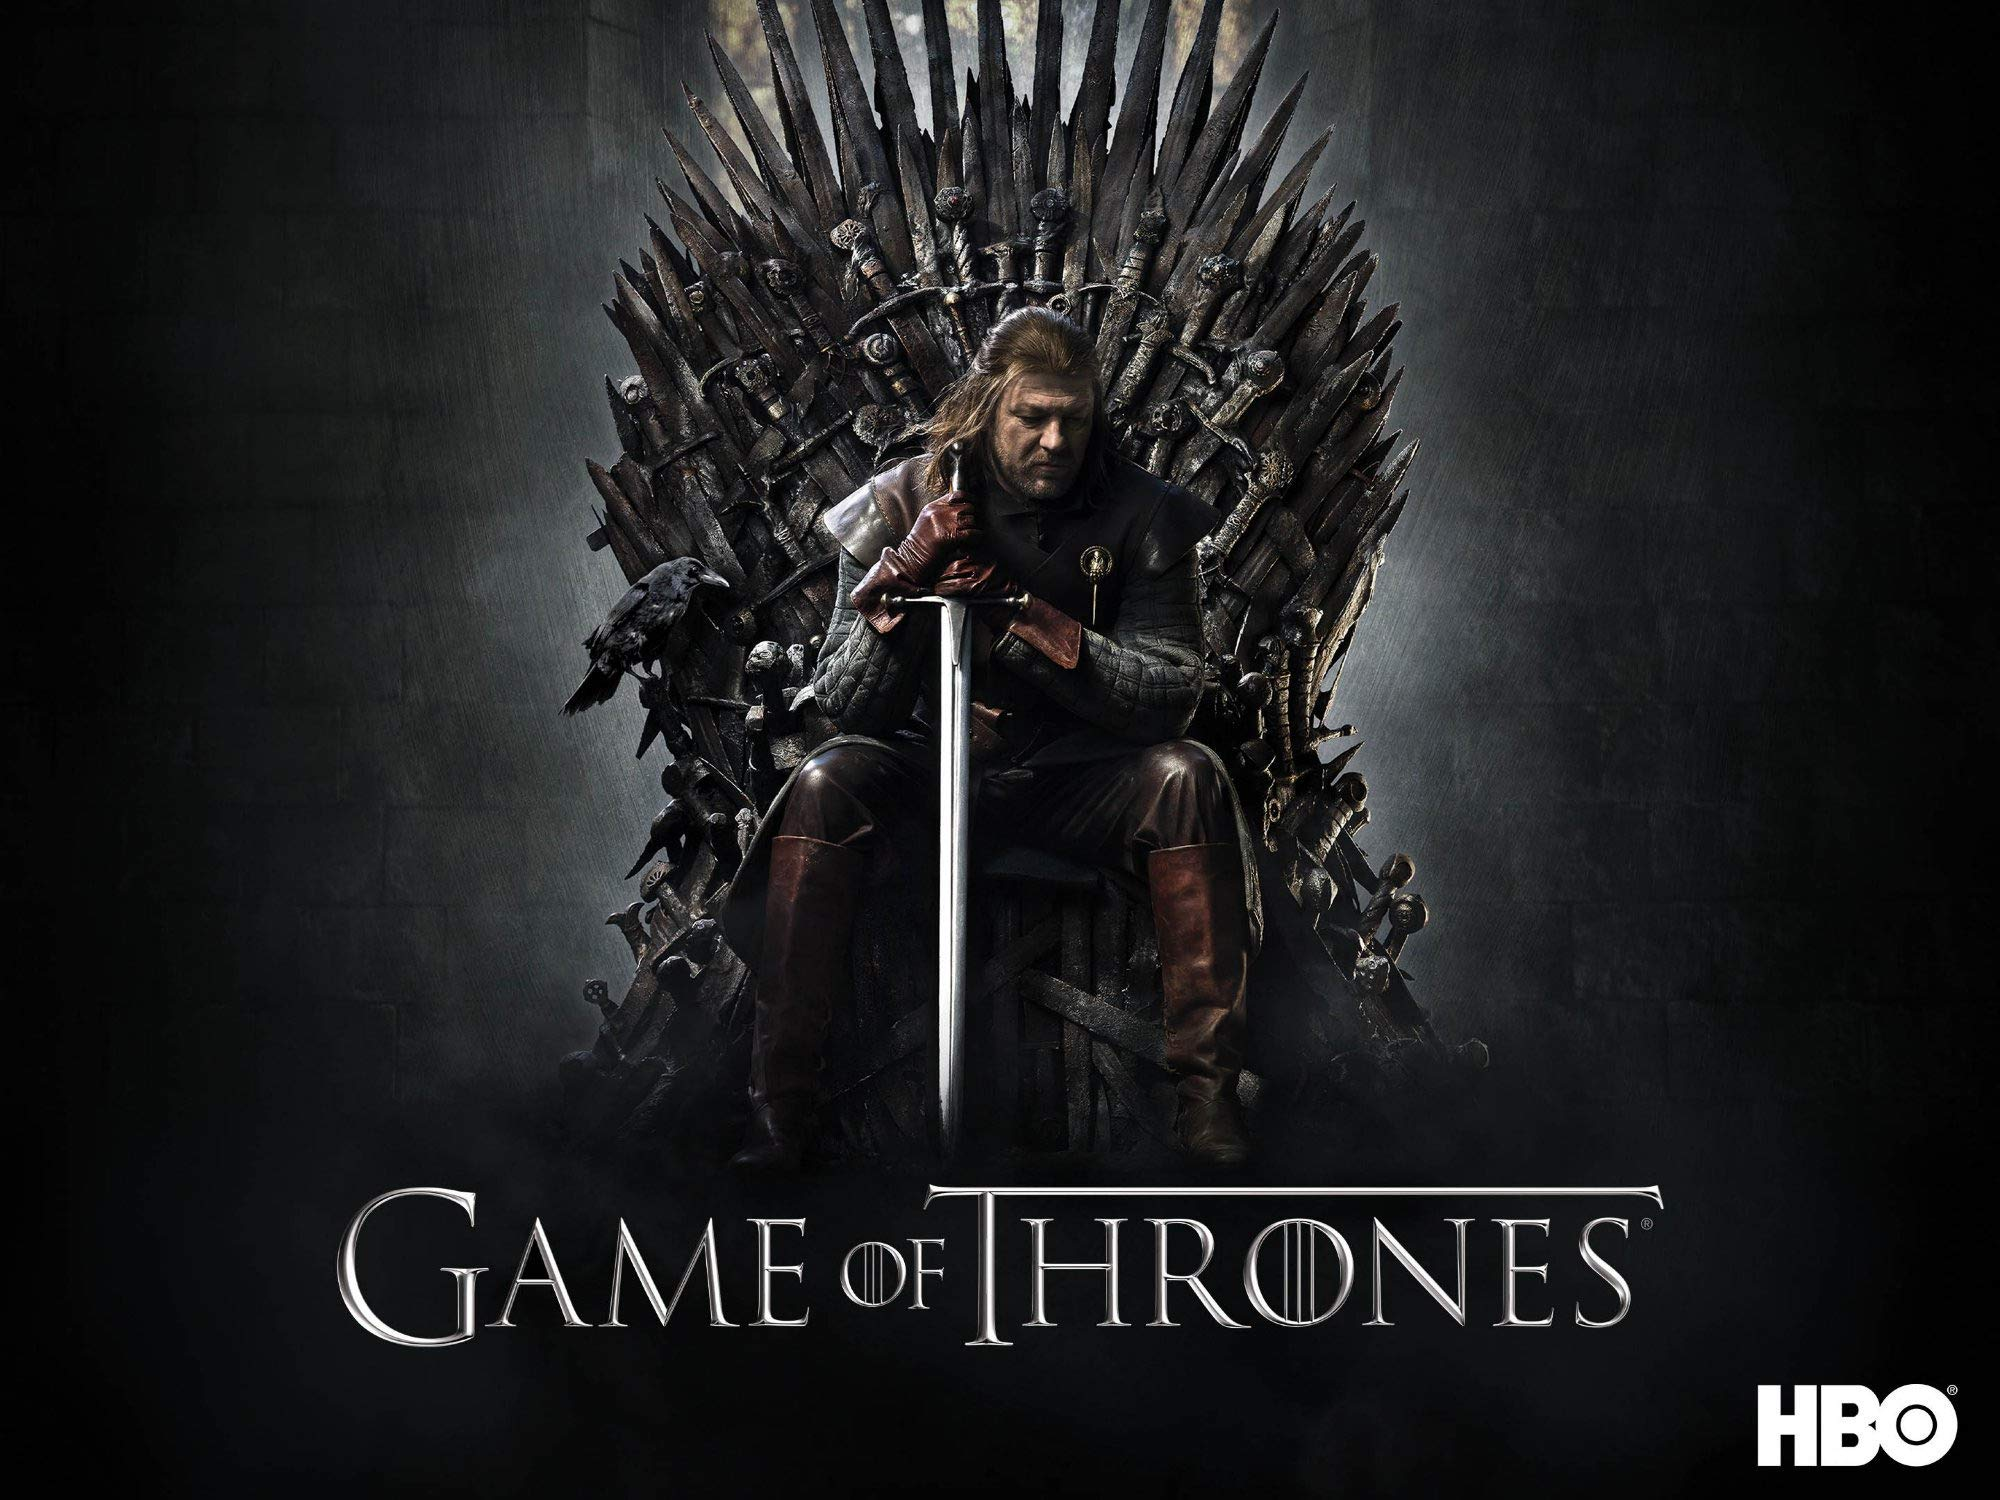 Watch Game of Thrones: Season 7 | Prime Video